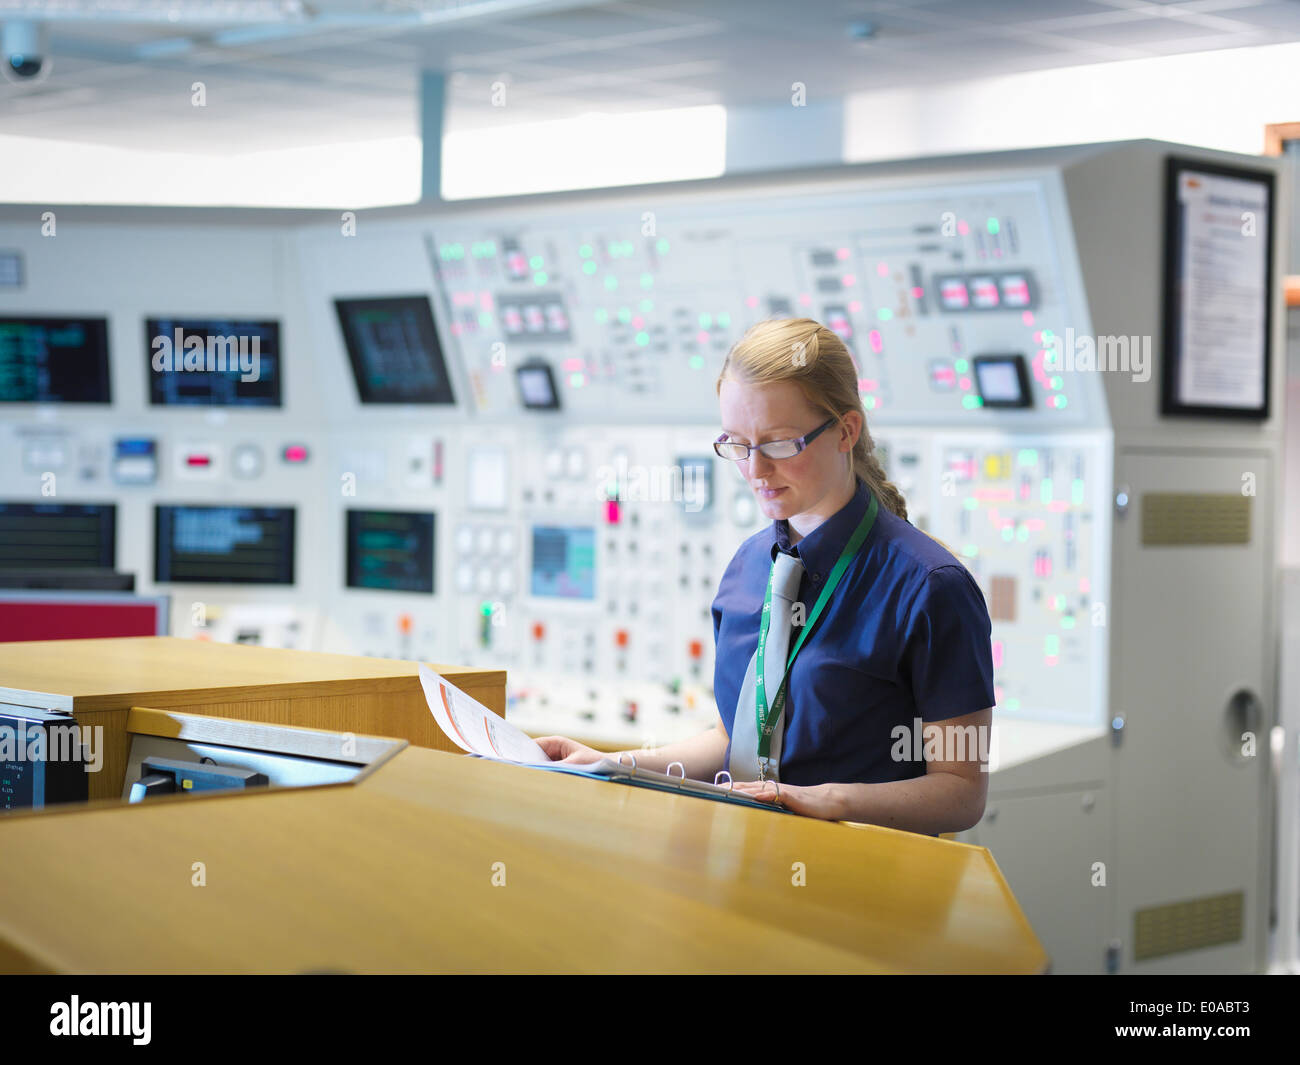 Female operator reading notes in nuclear power station control room simulator - Stock Image